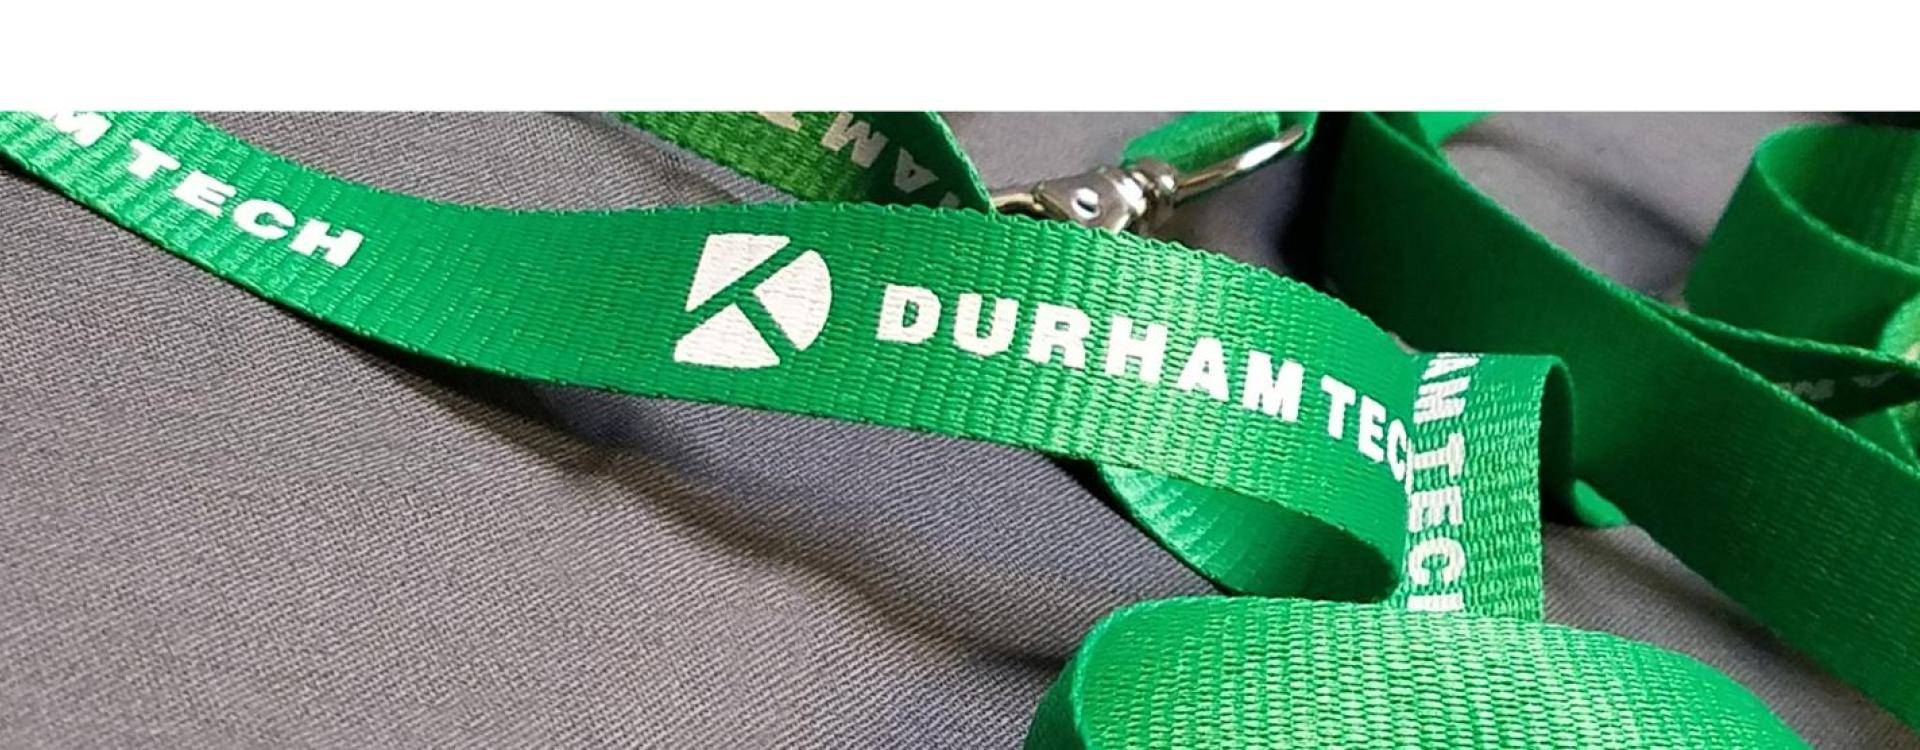 lanyard with Durham Tech printed on it